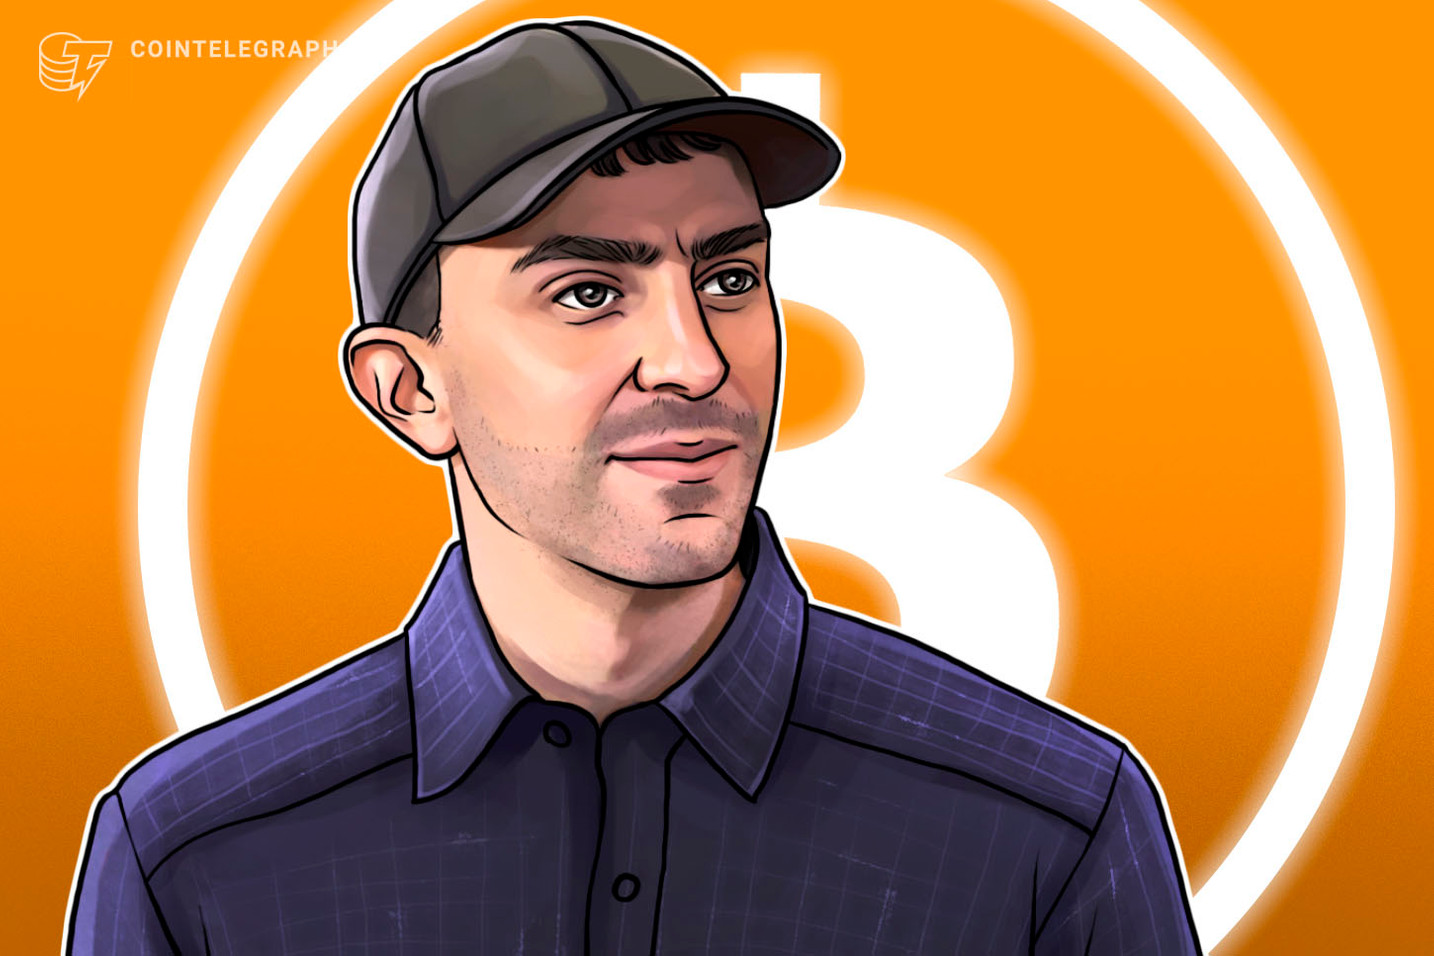 $50K Bitcoin Is 'Reasonable' if BTC Hits New Highs, Says Tone Vays